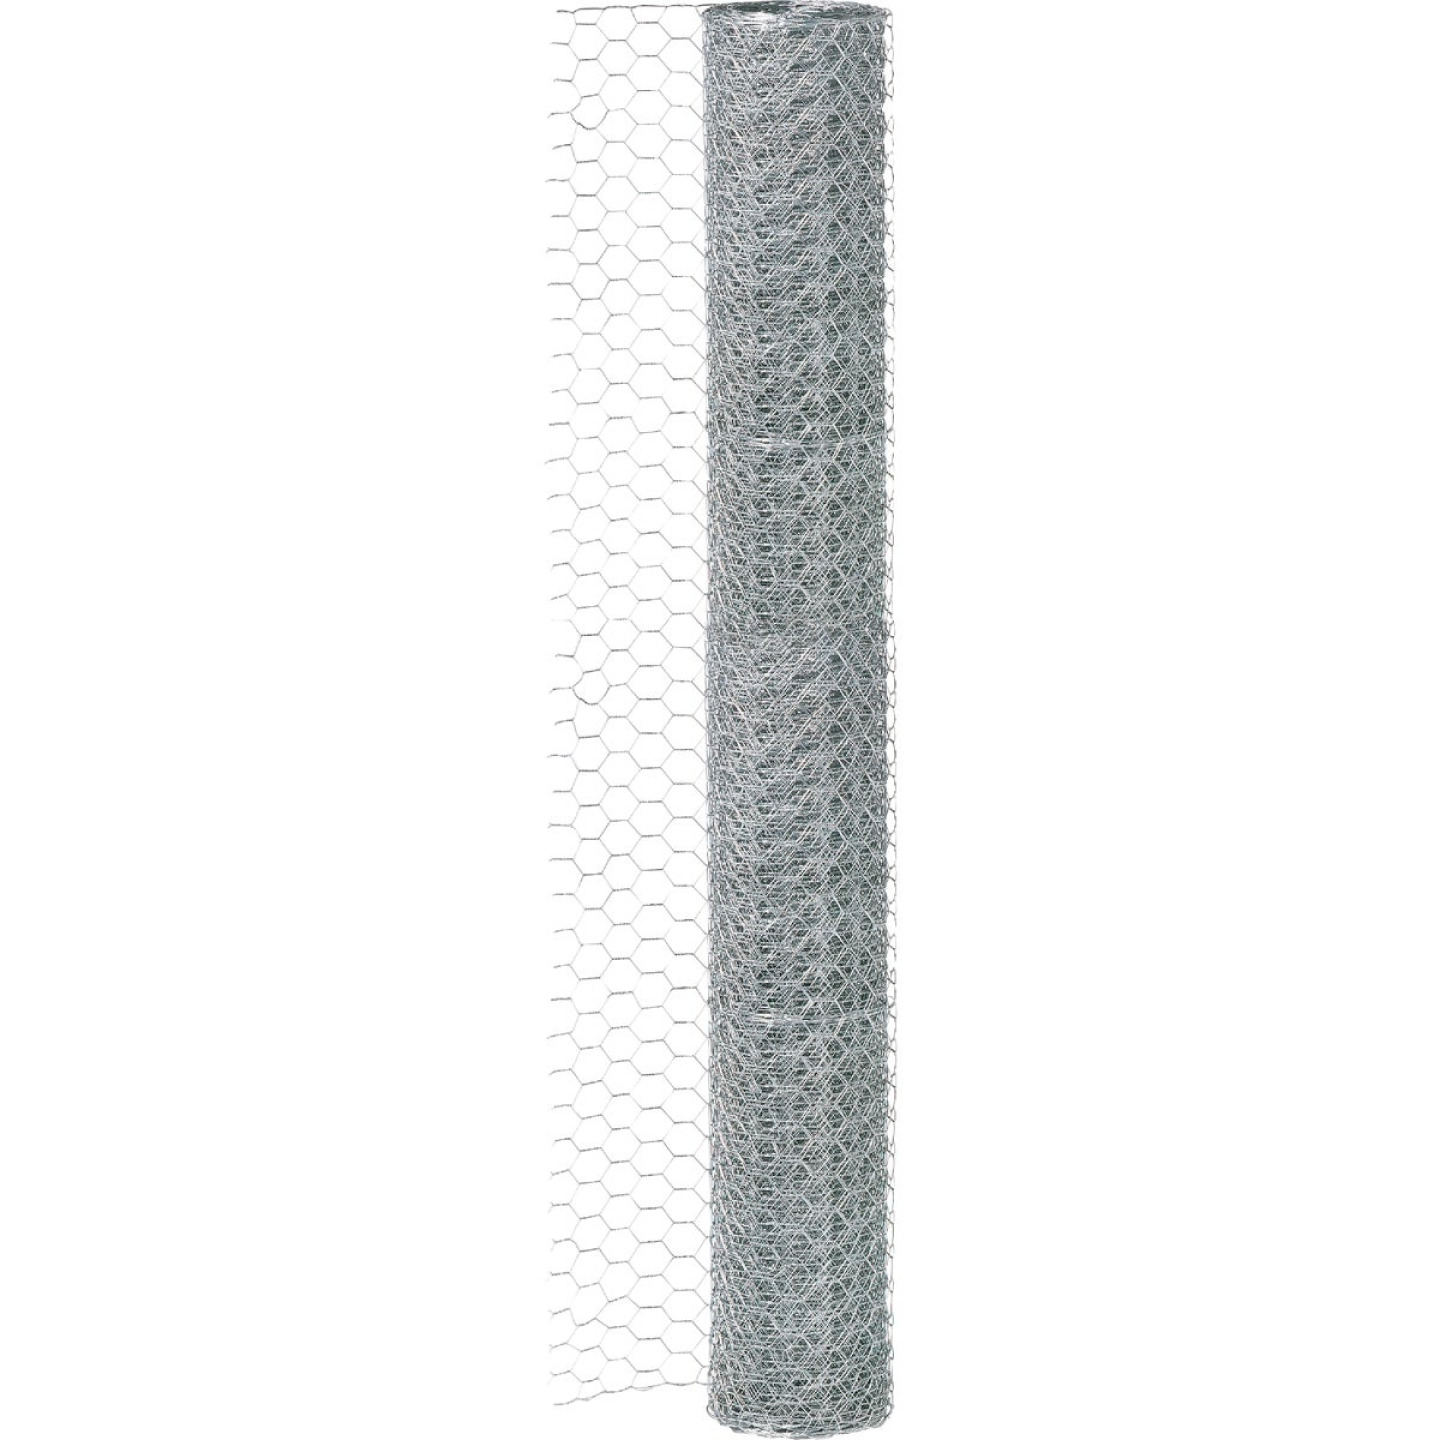 1 In. x 24 In. H. x 10 Ft. L. Hexagonal Wire Poultry Netting Image 3